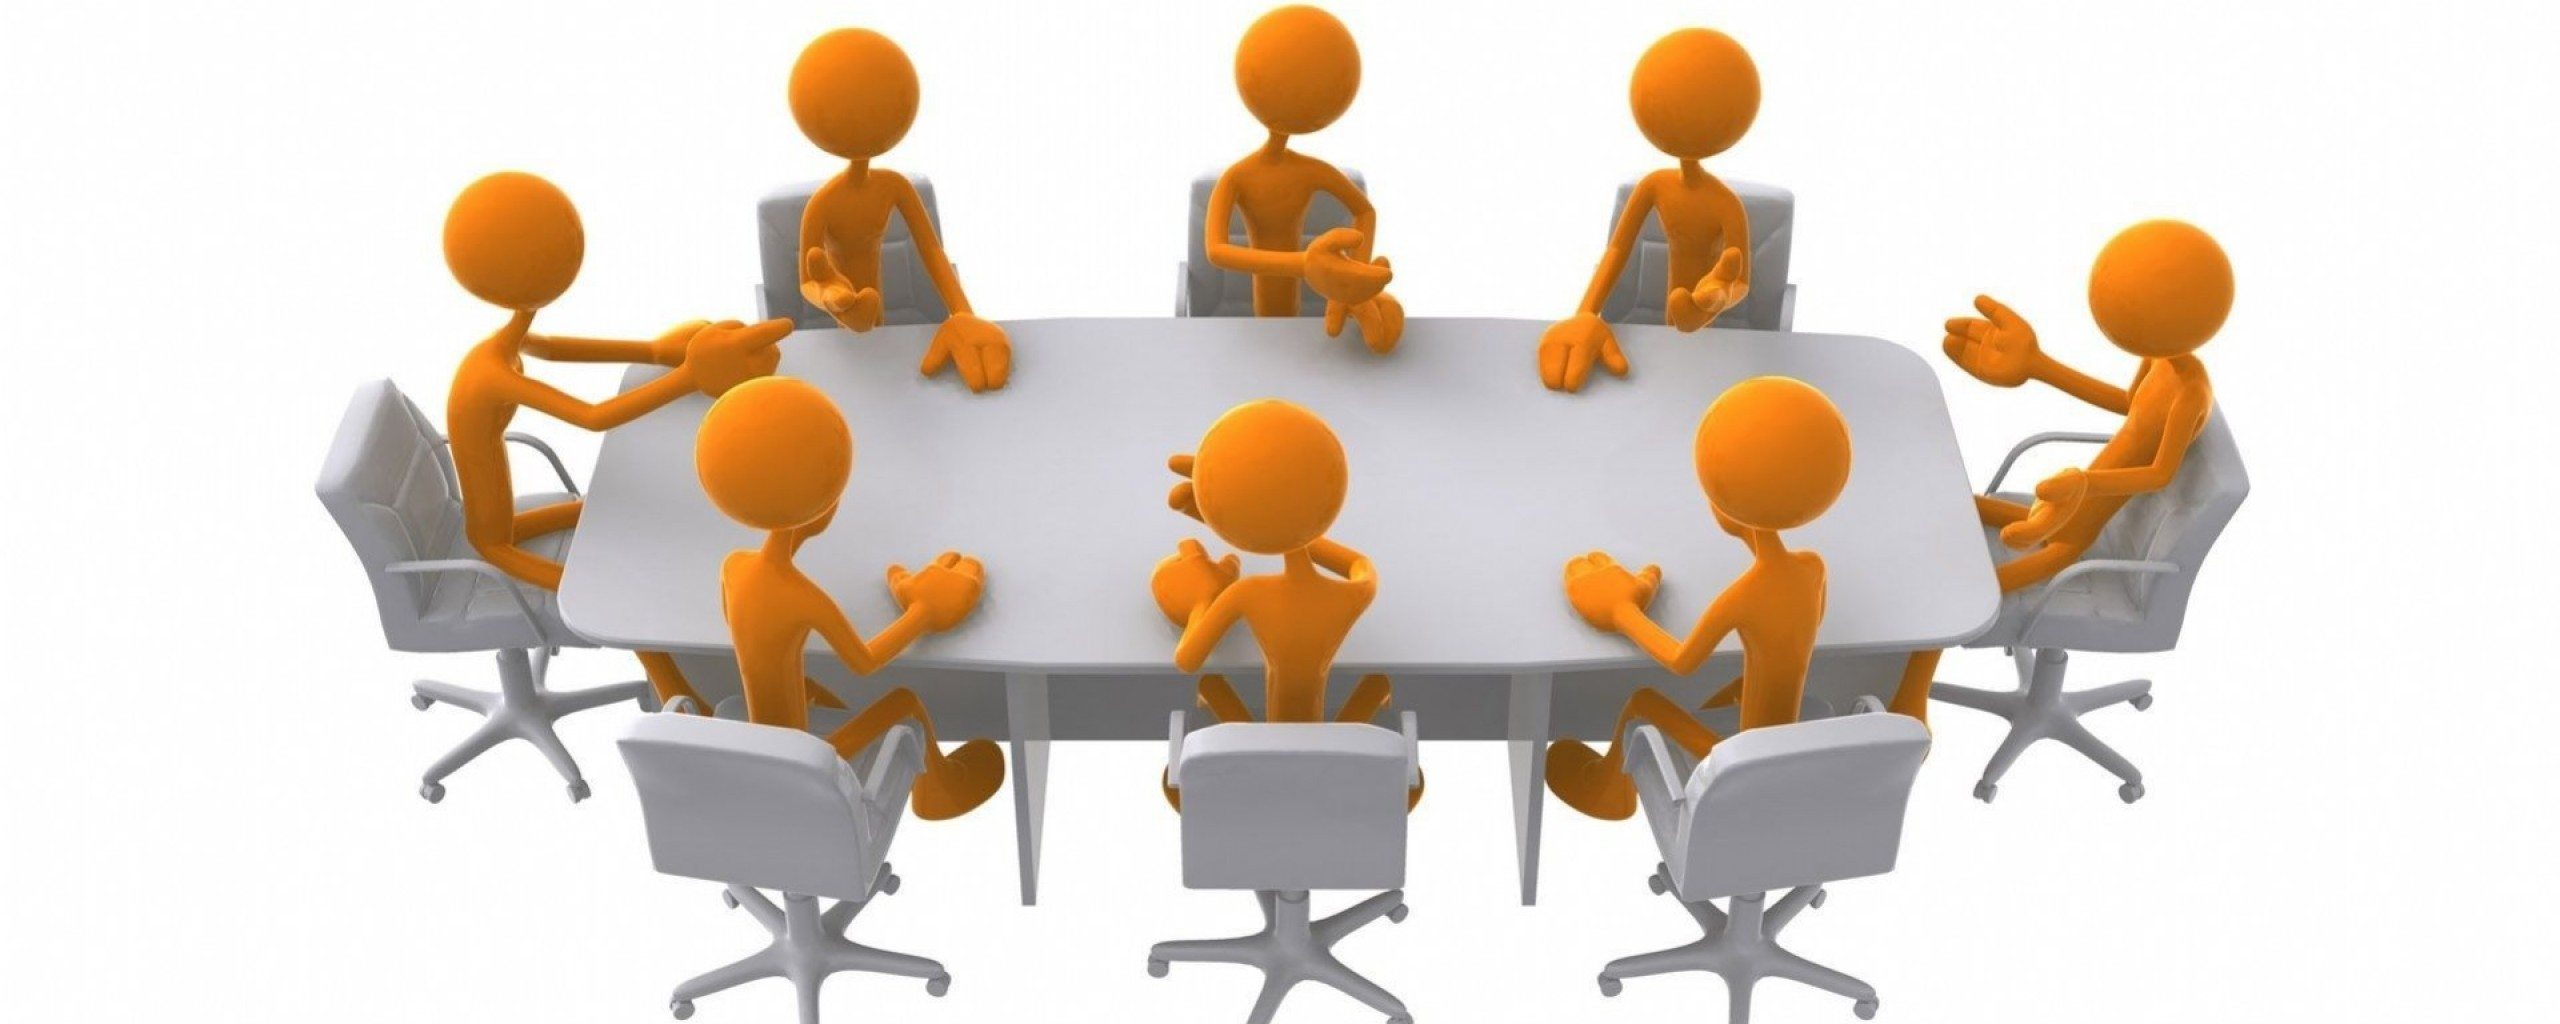 Download - Meeting Clipart